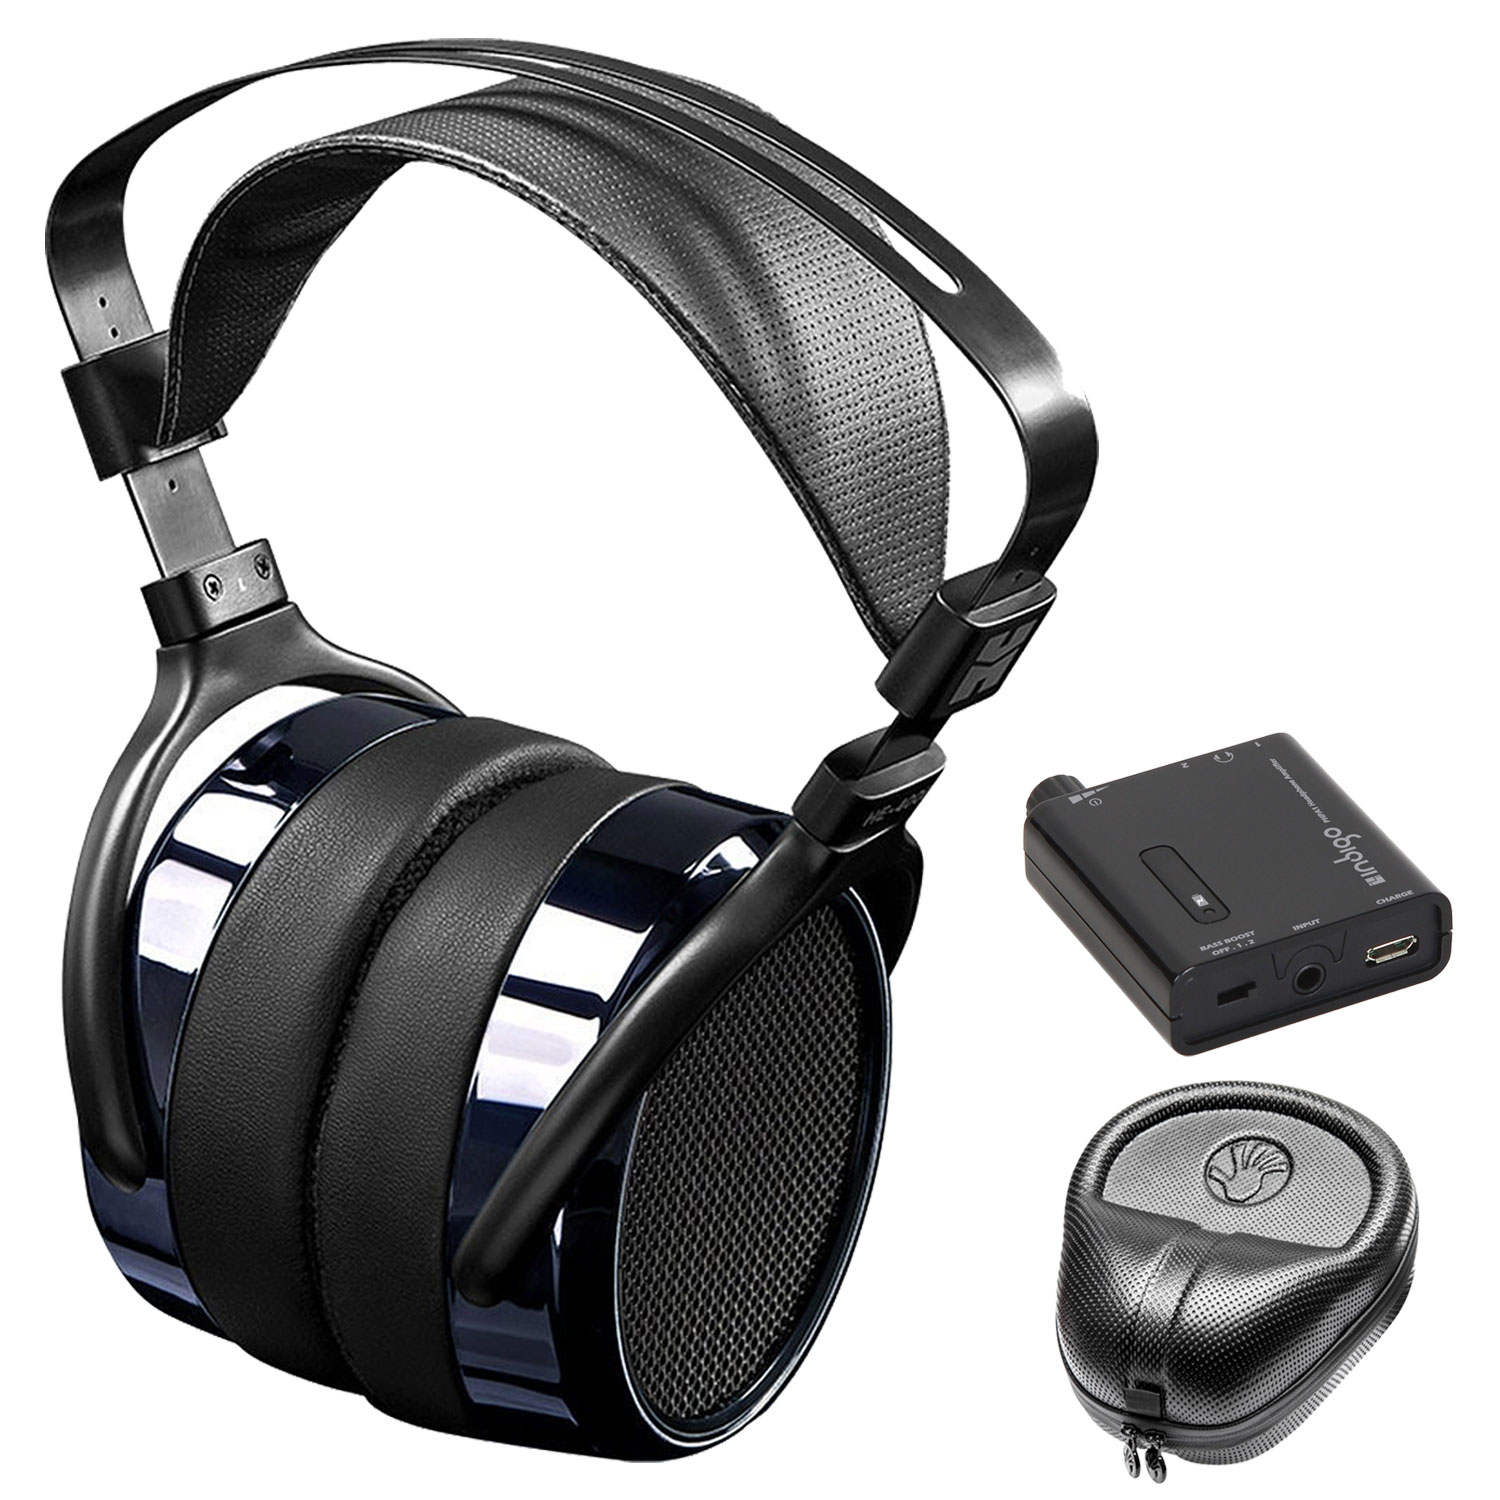 HIFIMAN HE400i Special Edition Over Ear Planar Magnetic Headphones w/ Amplifier and Case